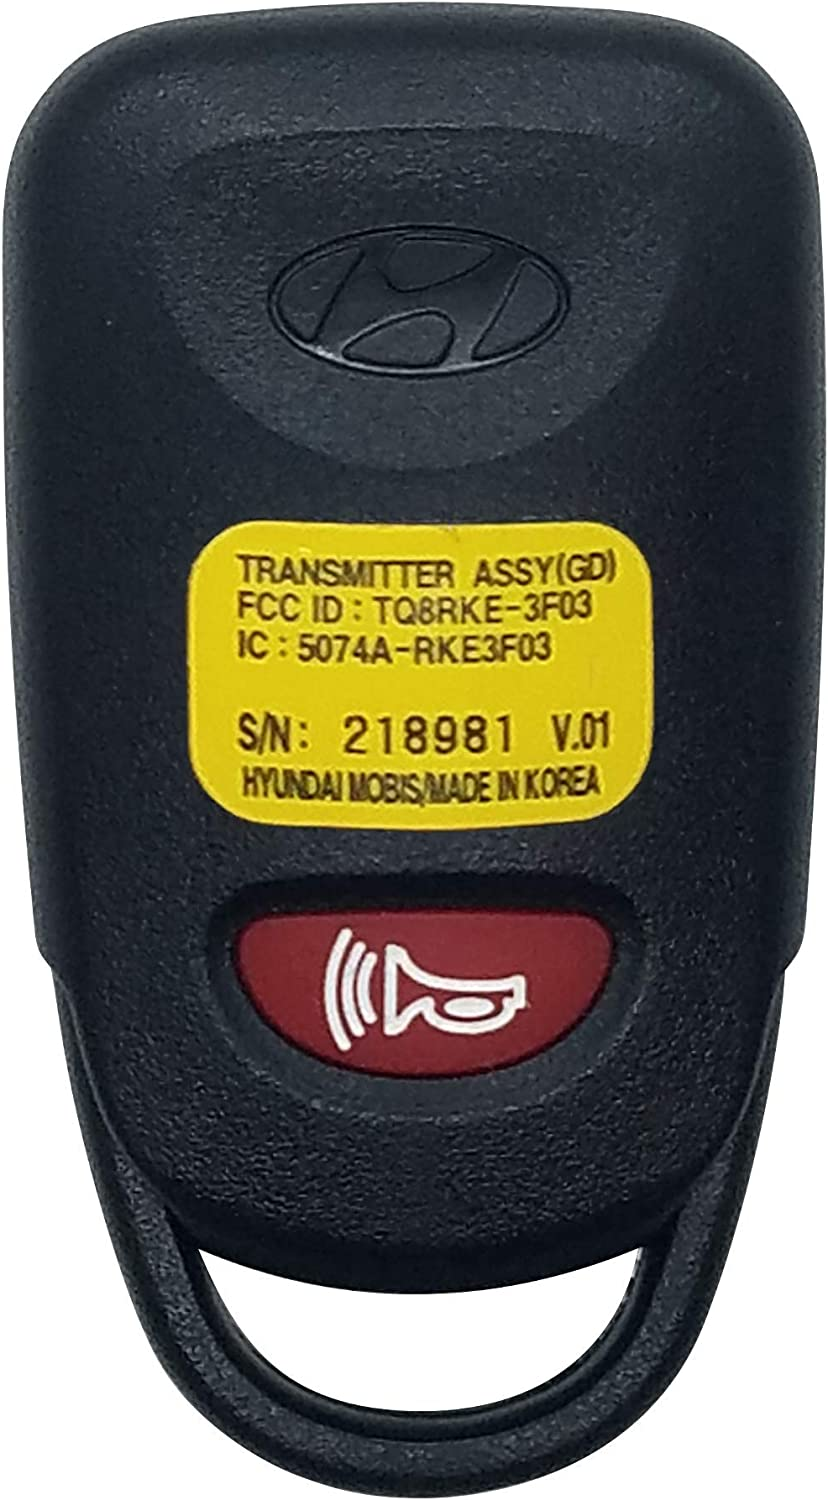 New Replacement Remote Key Keyless Entry Fob Transmitter For Hyundai TQ8RKE-3F03